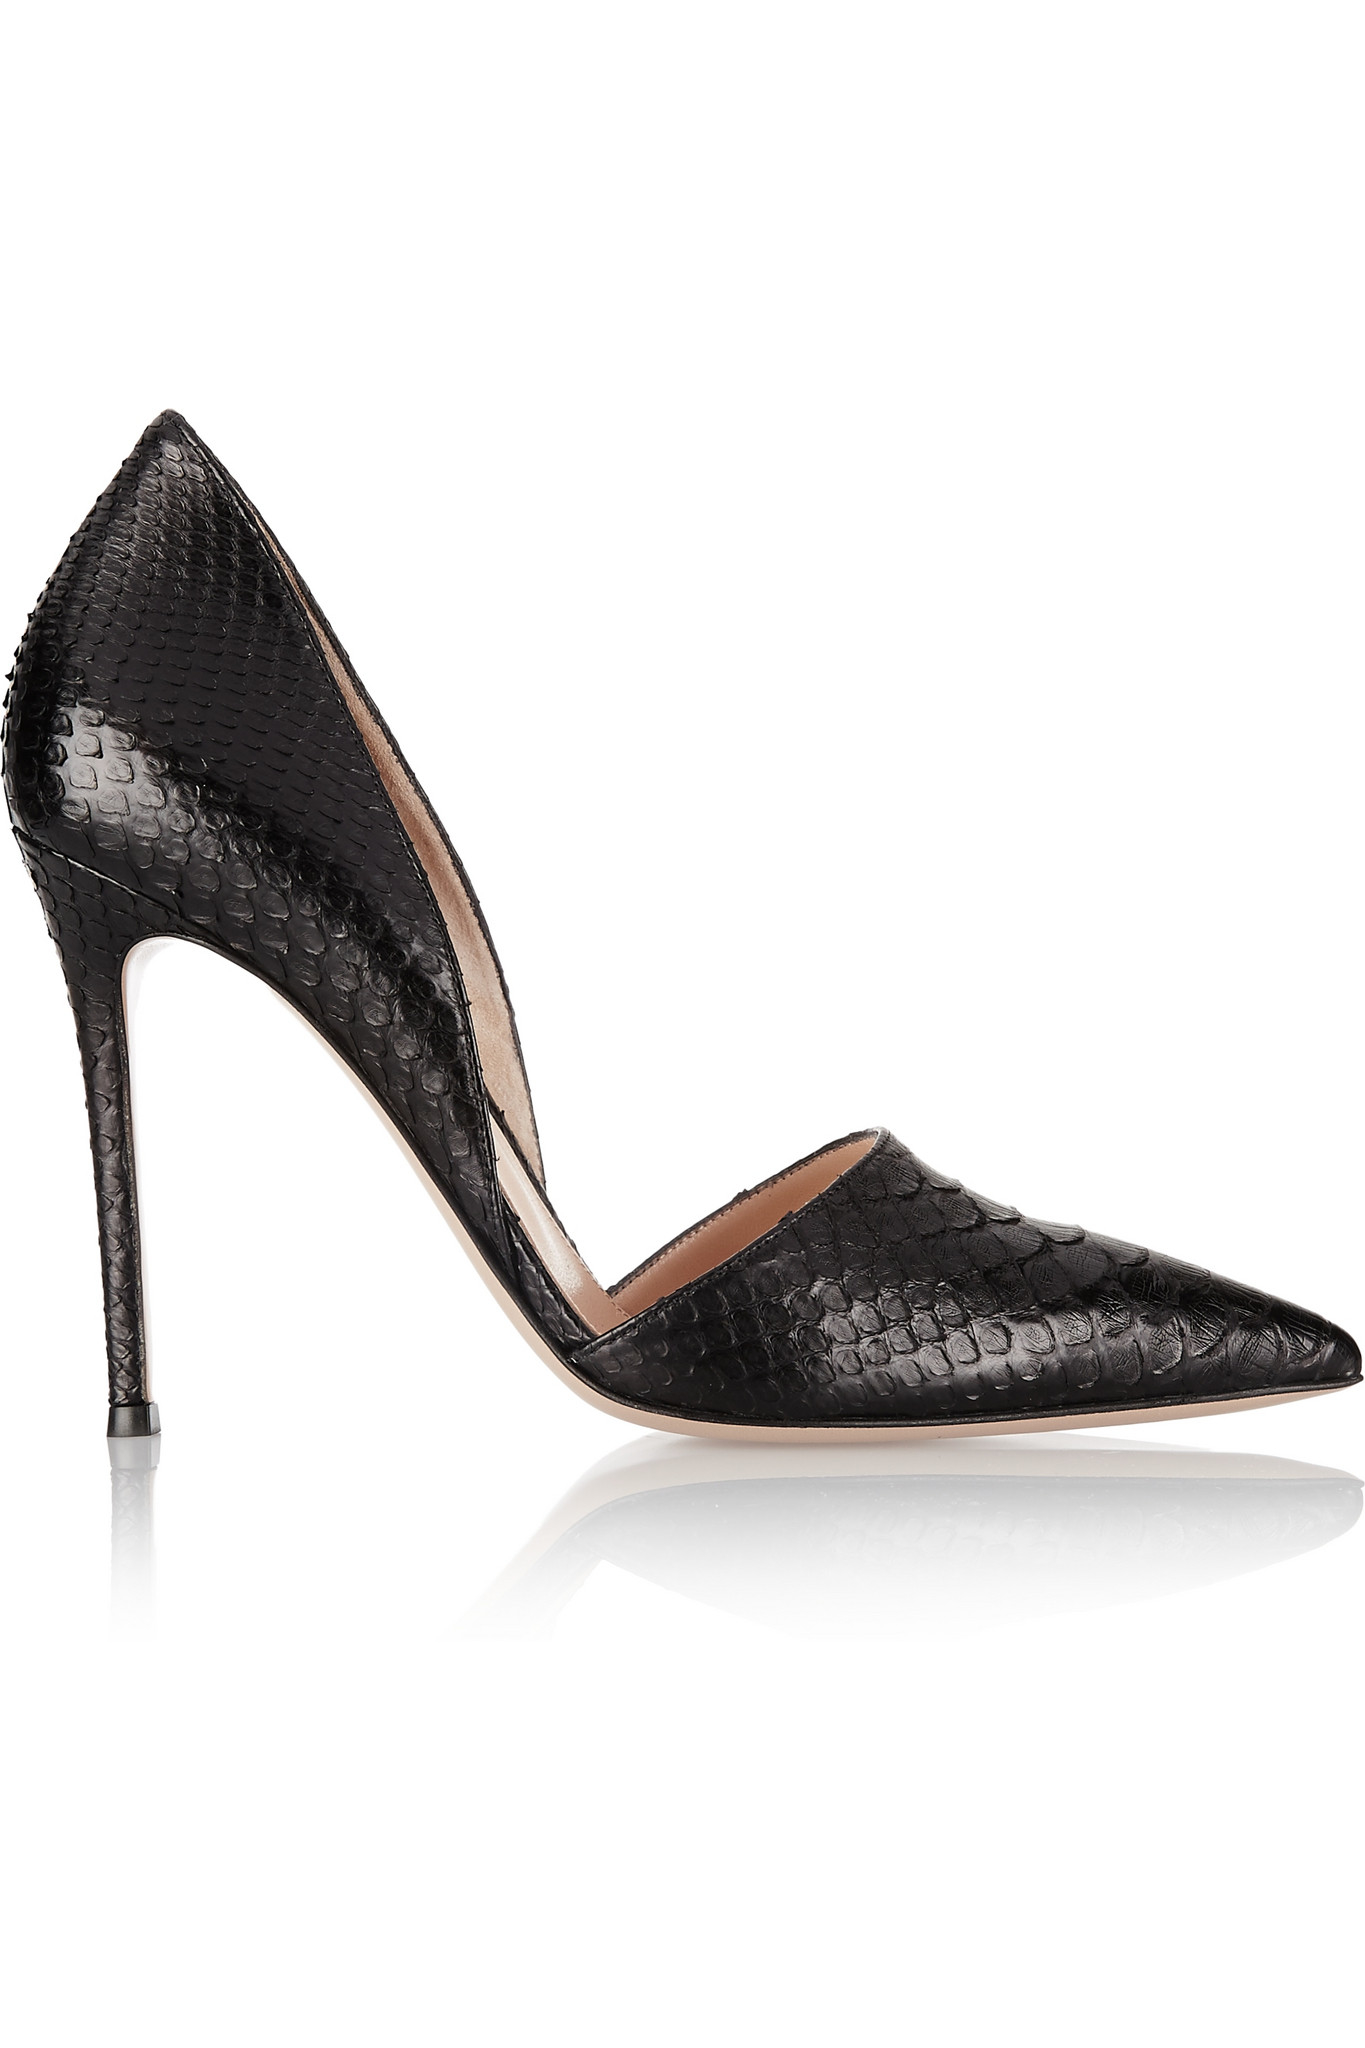 Gianvito Rossi Pumps | Gianvito Rossi Pump | Gianvito Rossi Plexi Pump